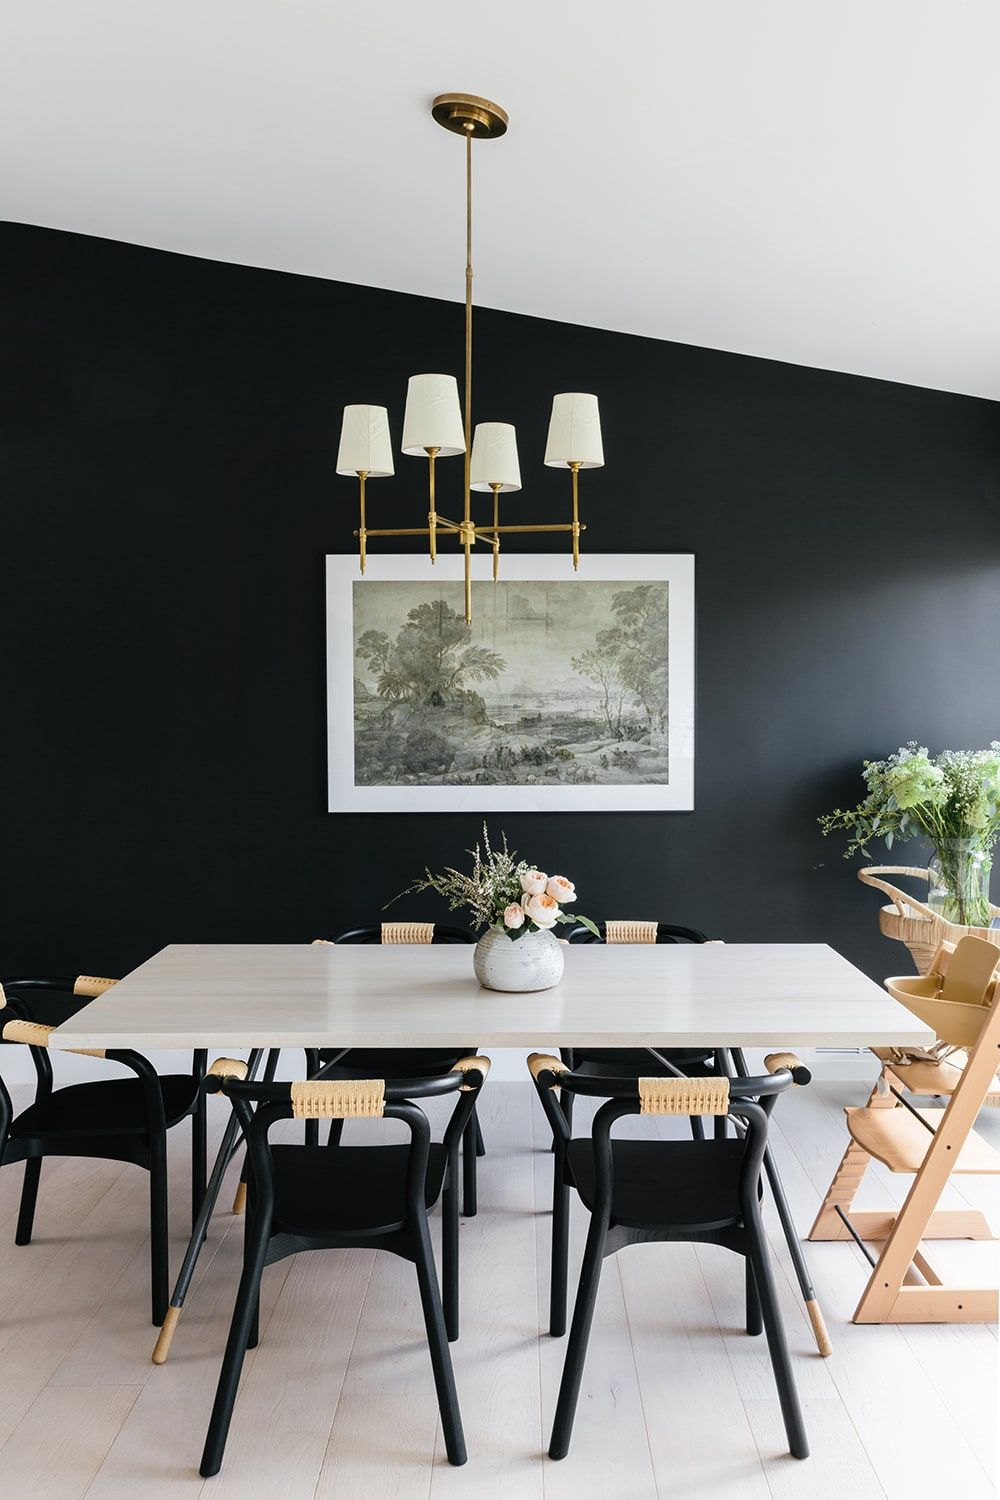 Black Accent Wall Ideas To Make A Bold Statement In Any Room Homelovr Black Dining Room Dining Room Makeover Home Decor